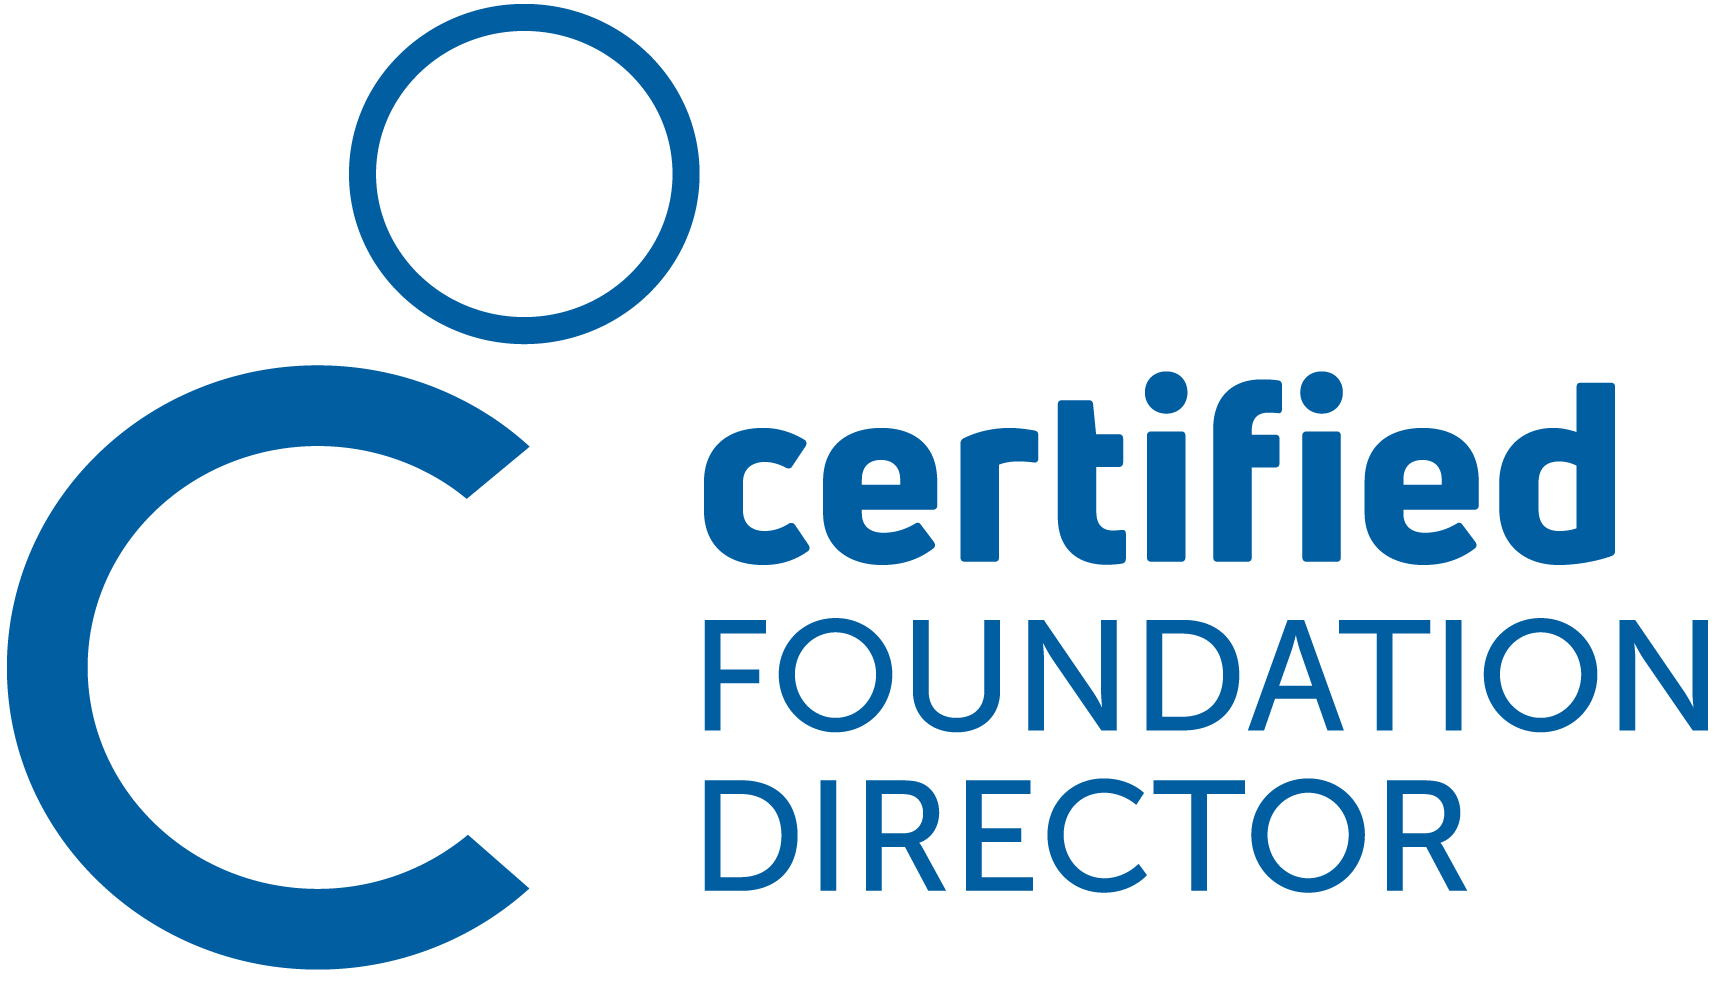 Produktlogo Zertifizierung Certified Foundation Director